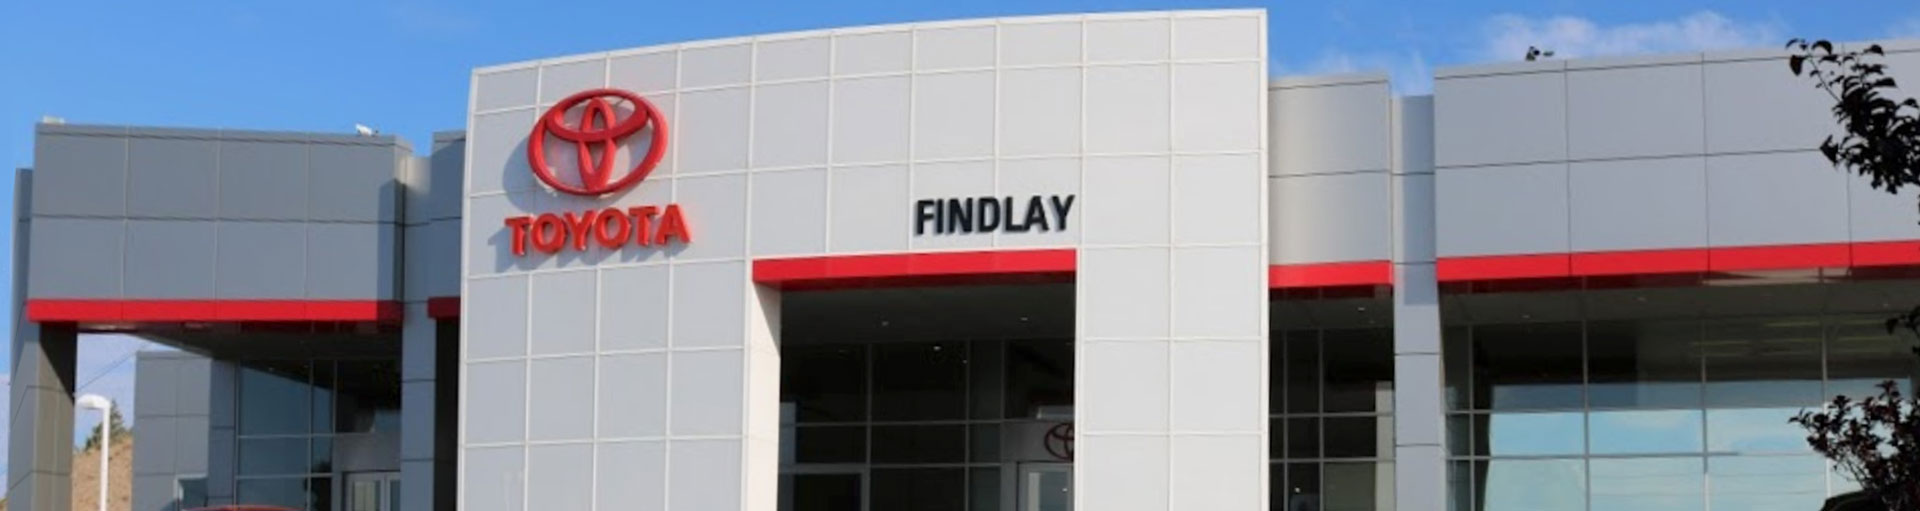 Findlay Toyota Service